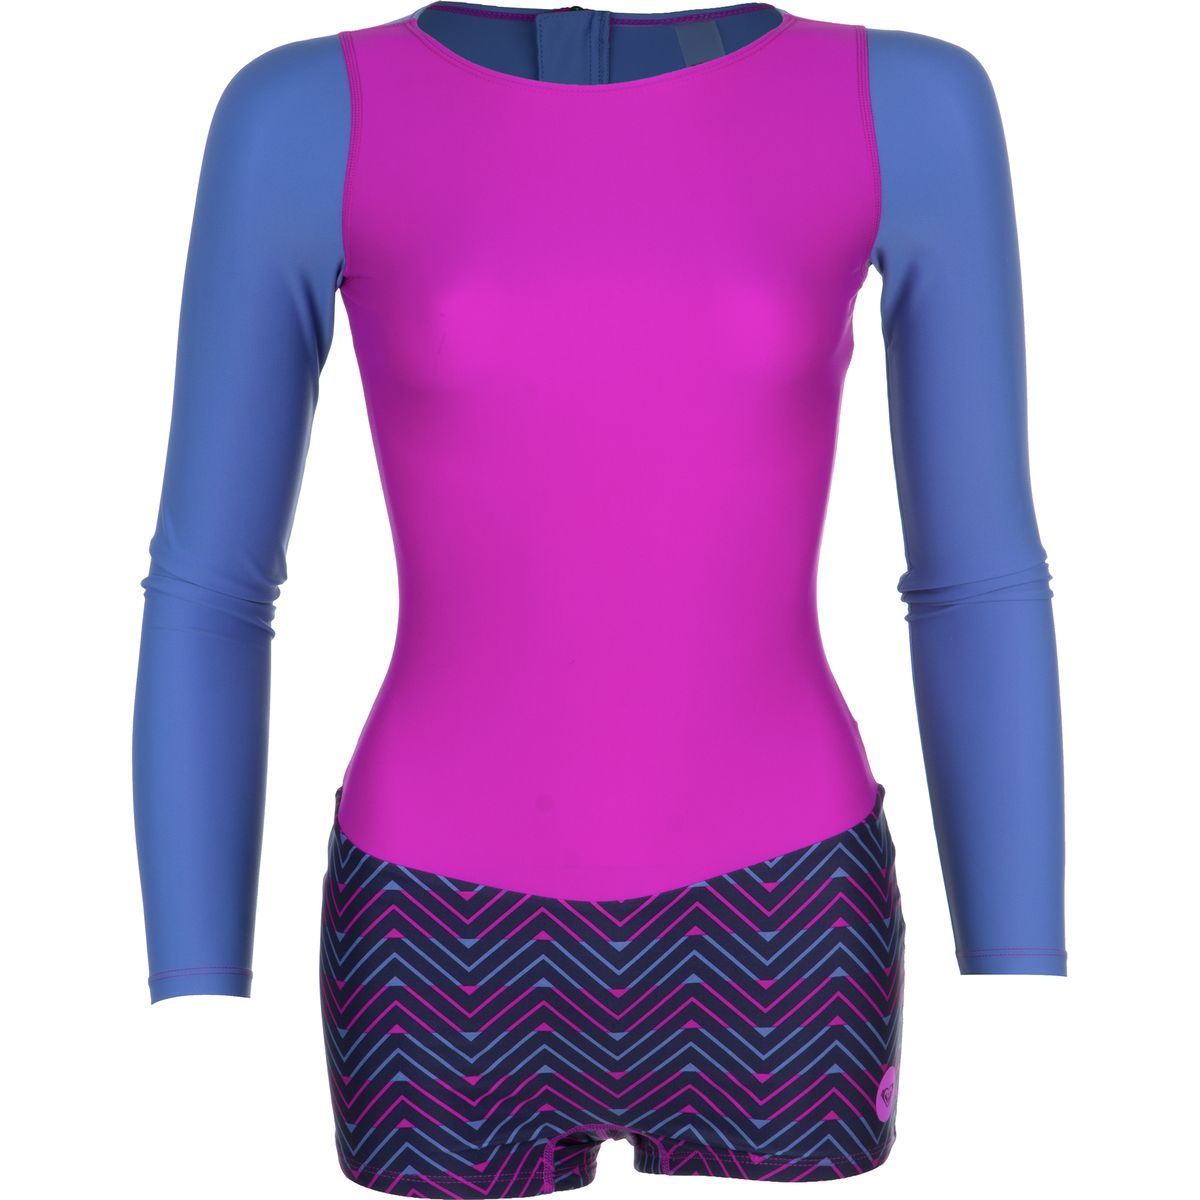 Roxy Spring It On Rashguard Suit